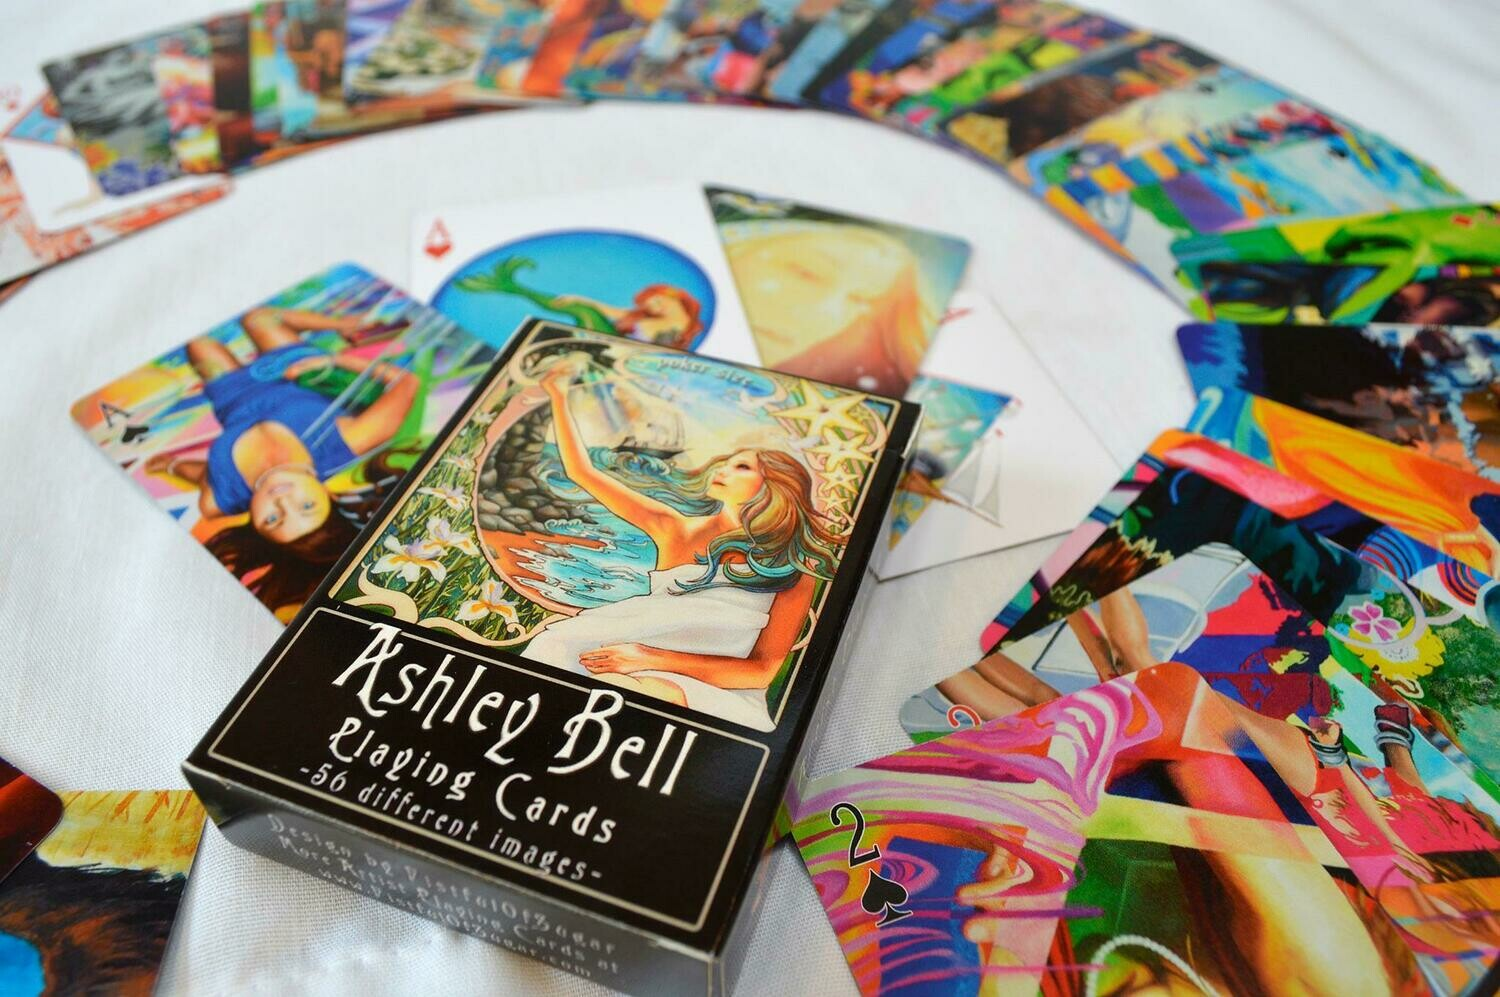 Playing Cards, Ashley Bell Art Cards